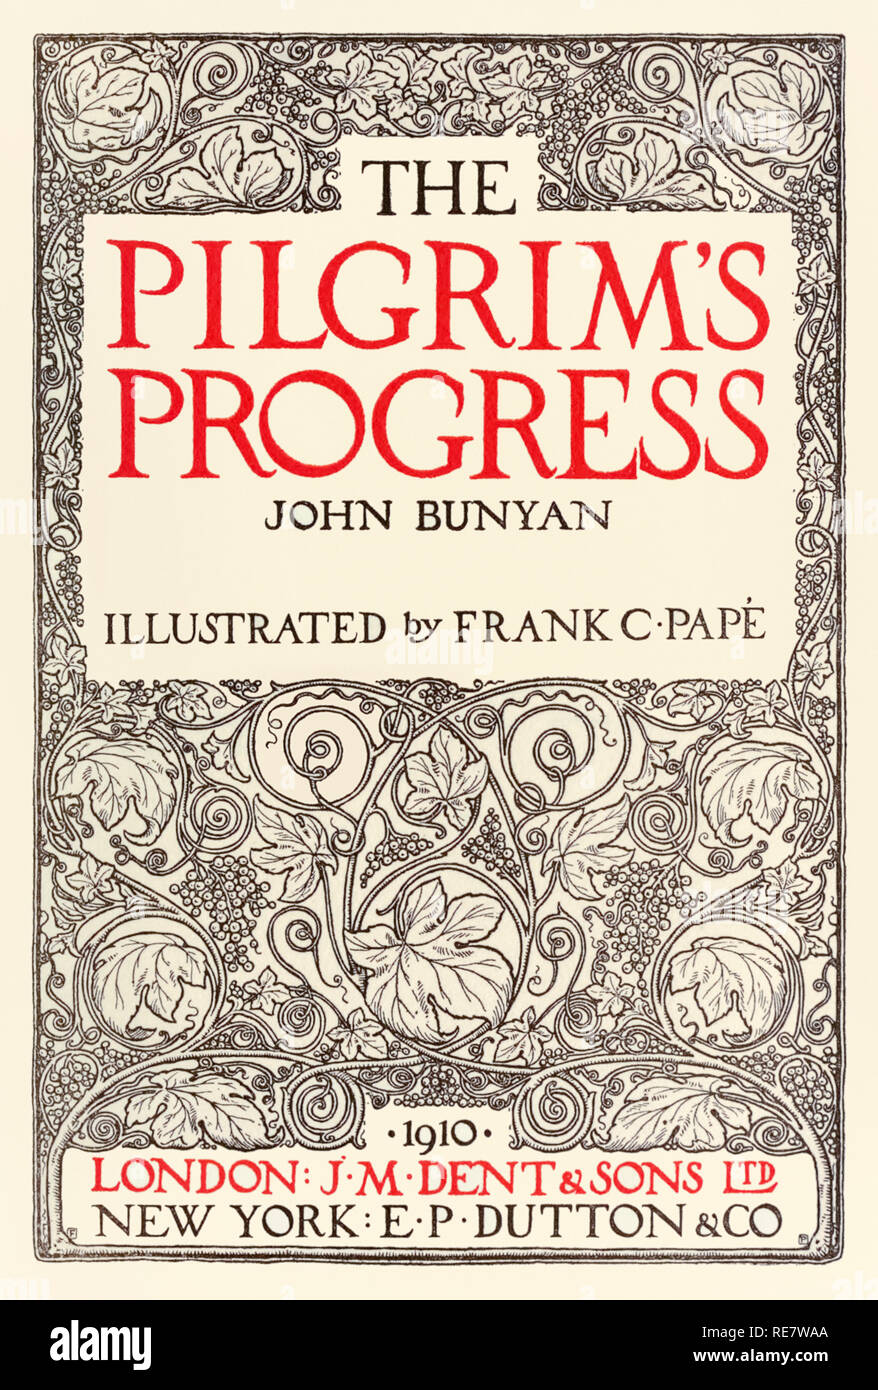 Title page from 'The Pilgrim's Progress' by John Bunyan (1628-1688) designed by Frank C. Papé (1878-1972) and published by J. M. Dent in 1910. See more information below. - Stock Image